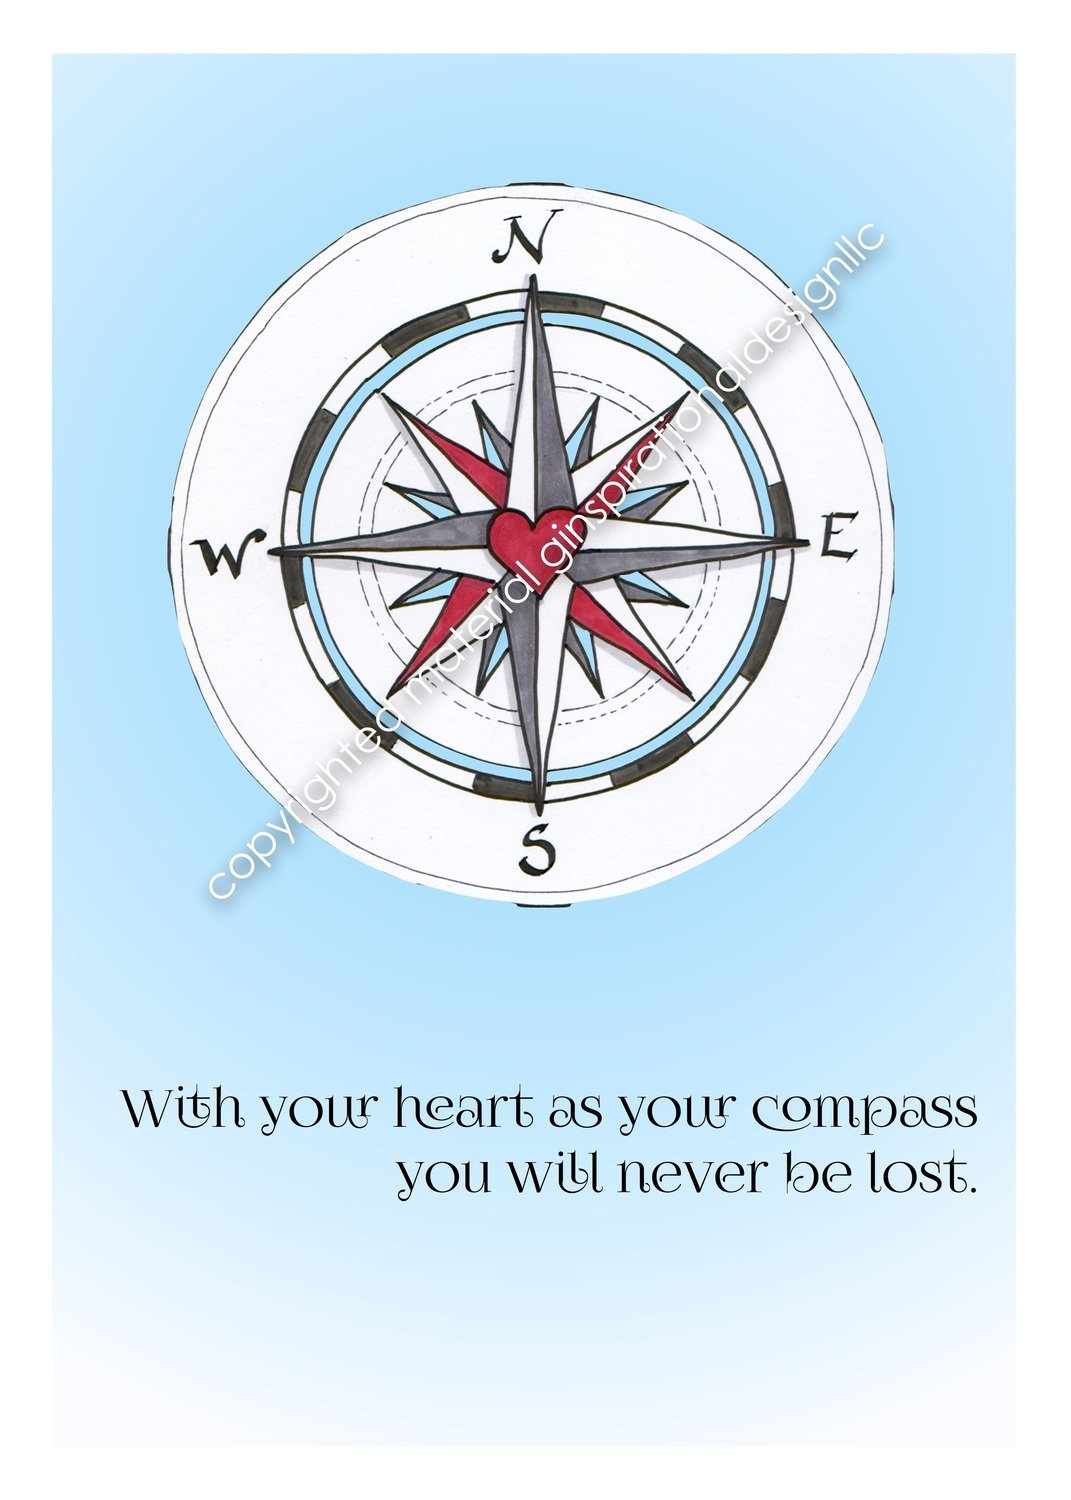 heart as your compass